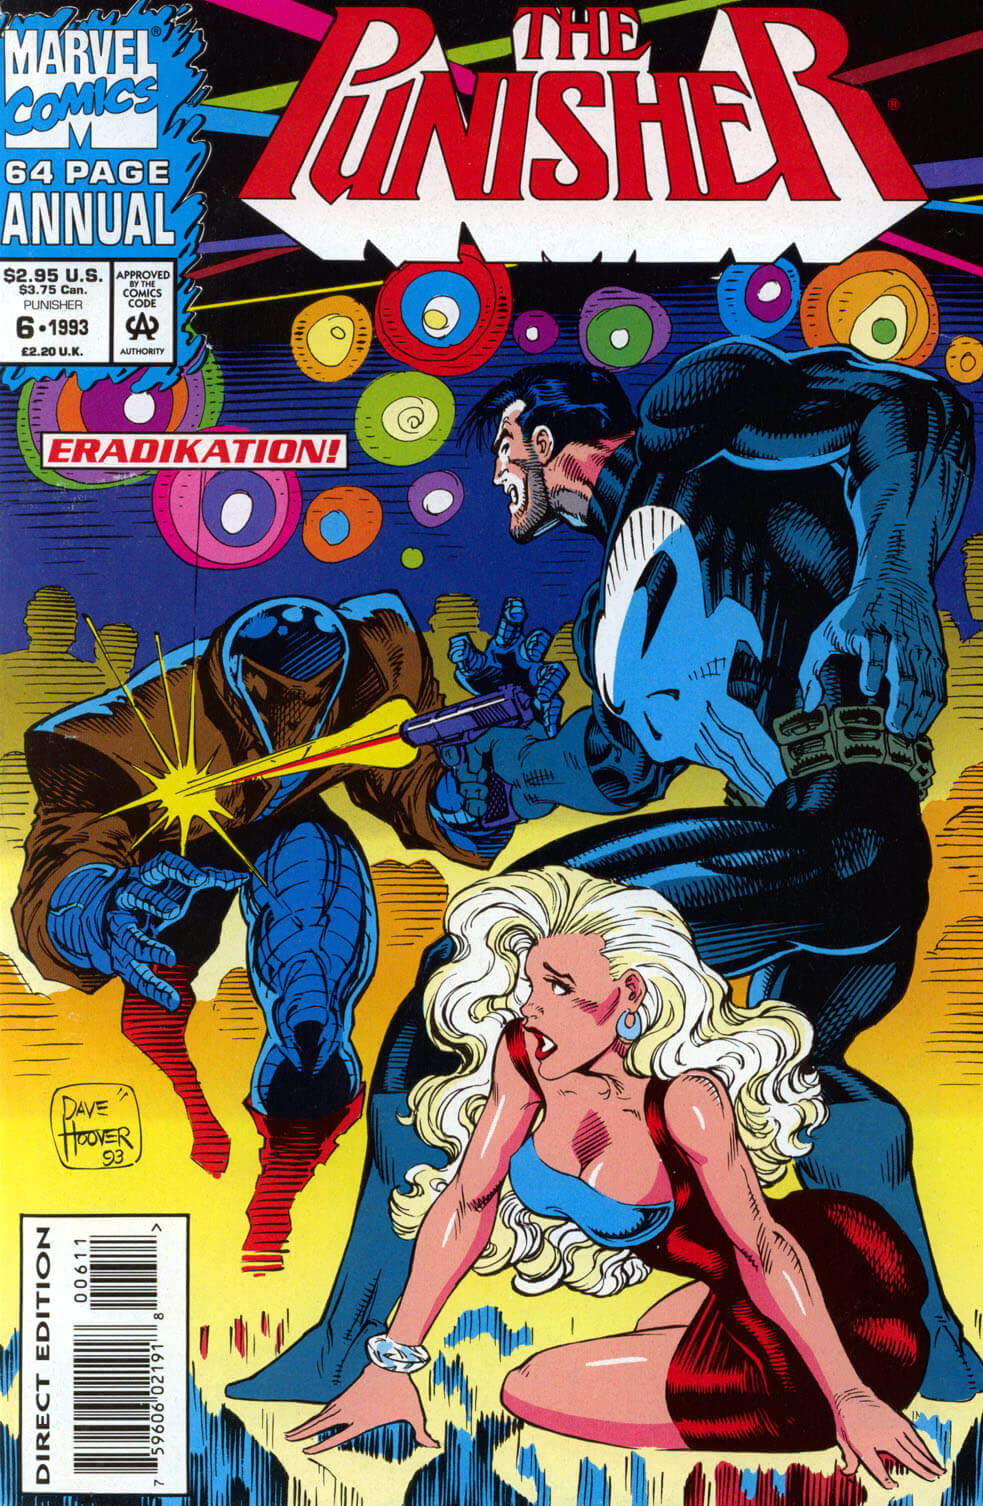 The Punisher v2 Annual #6